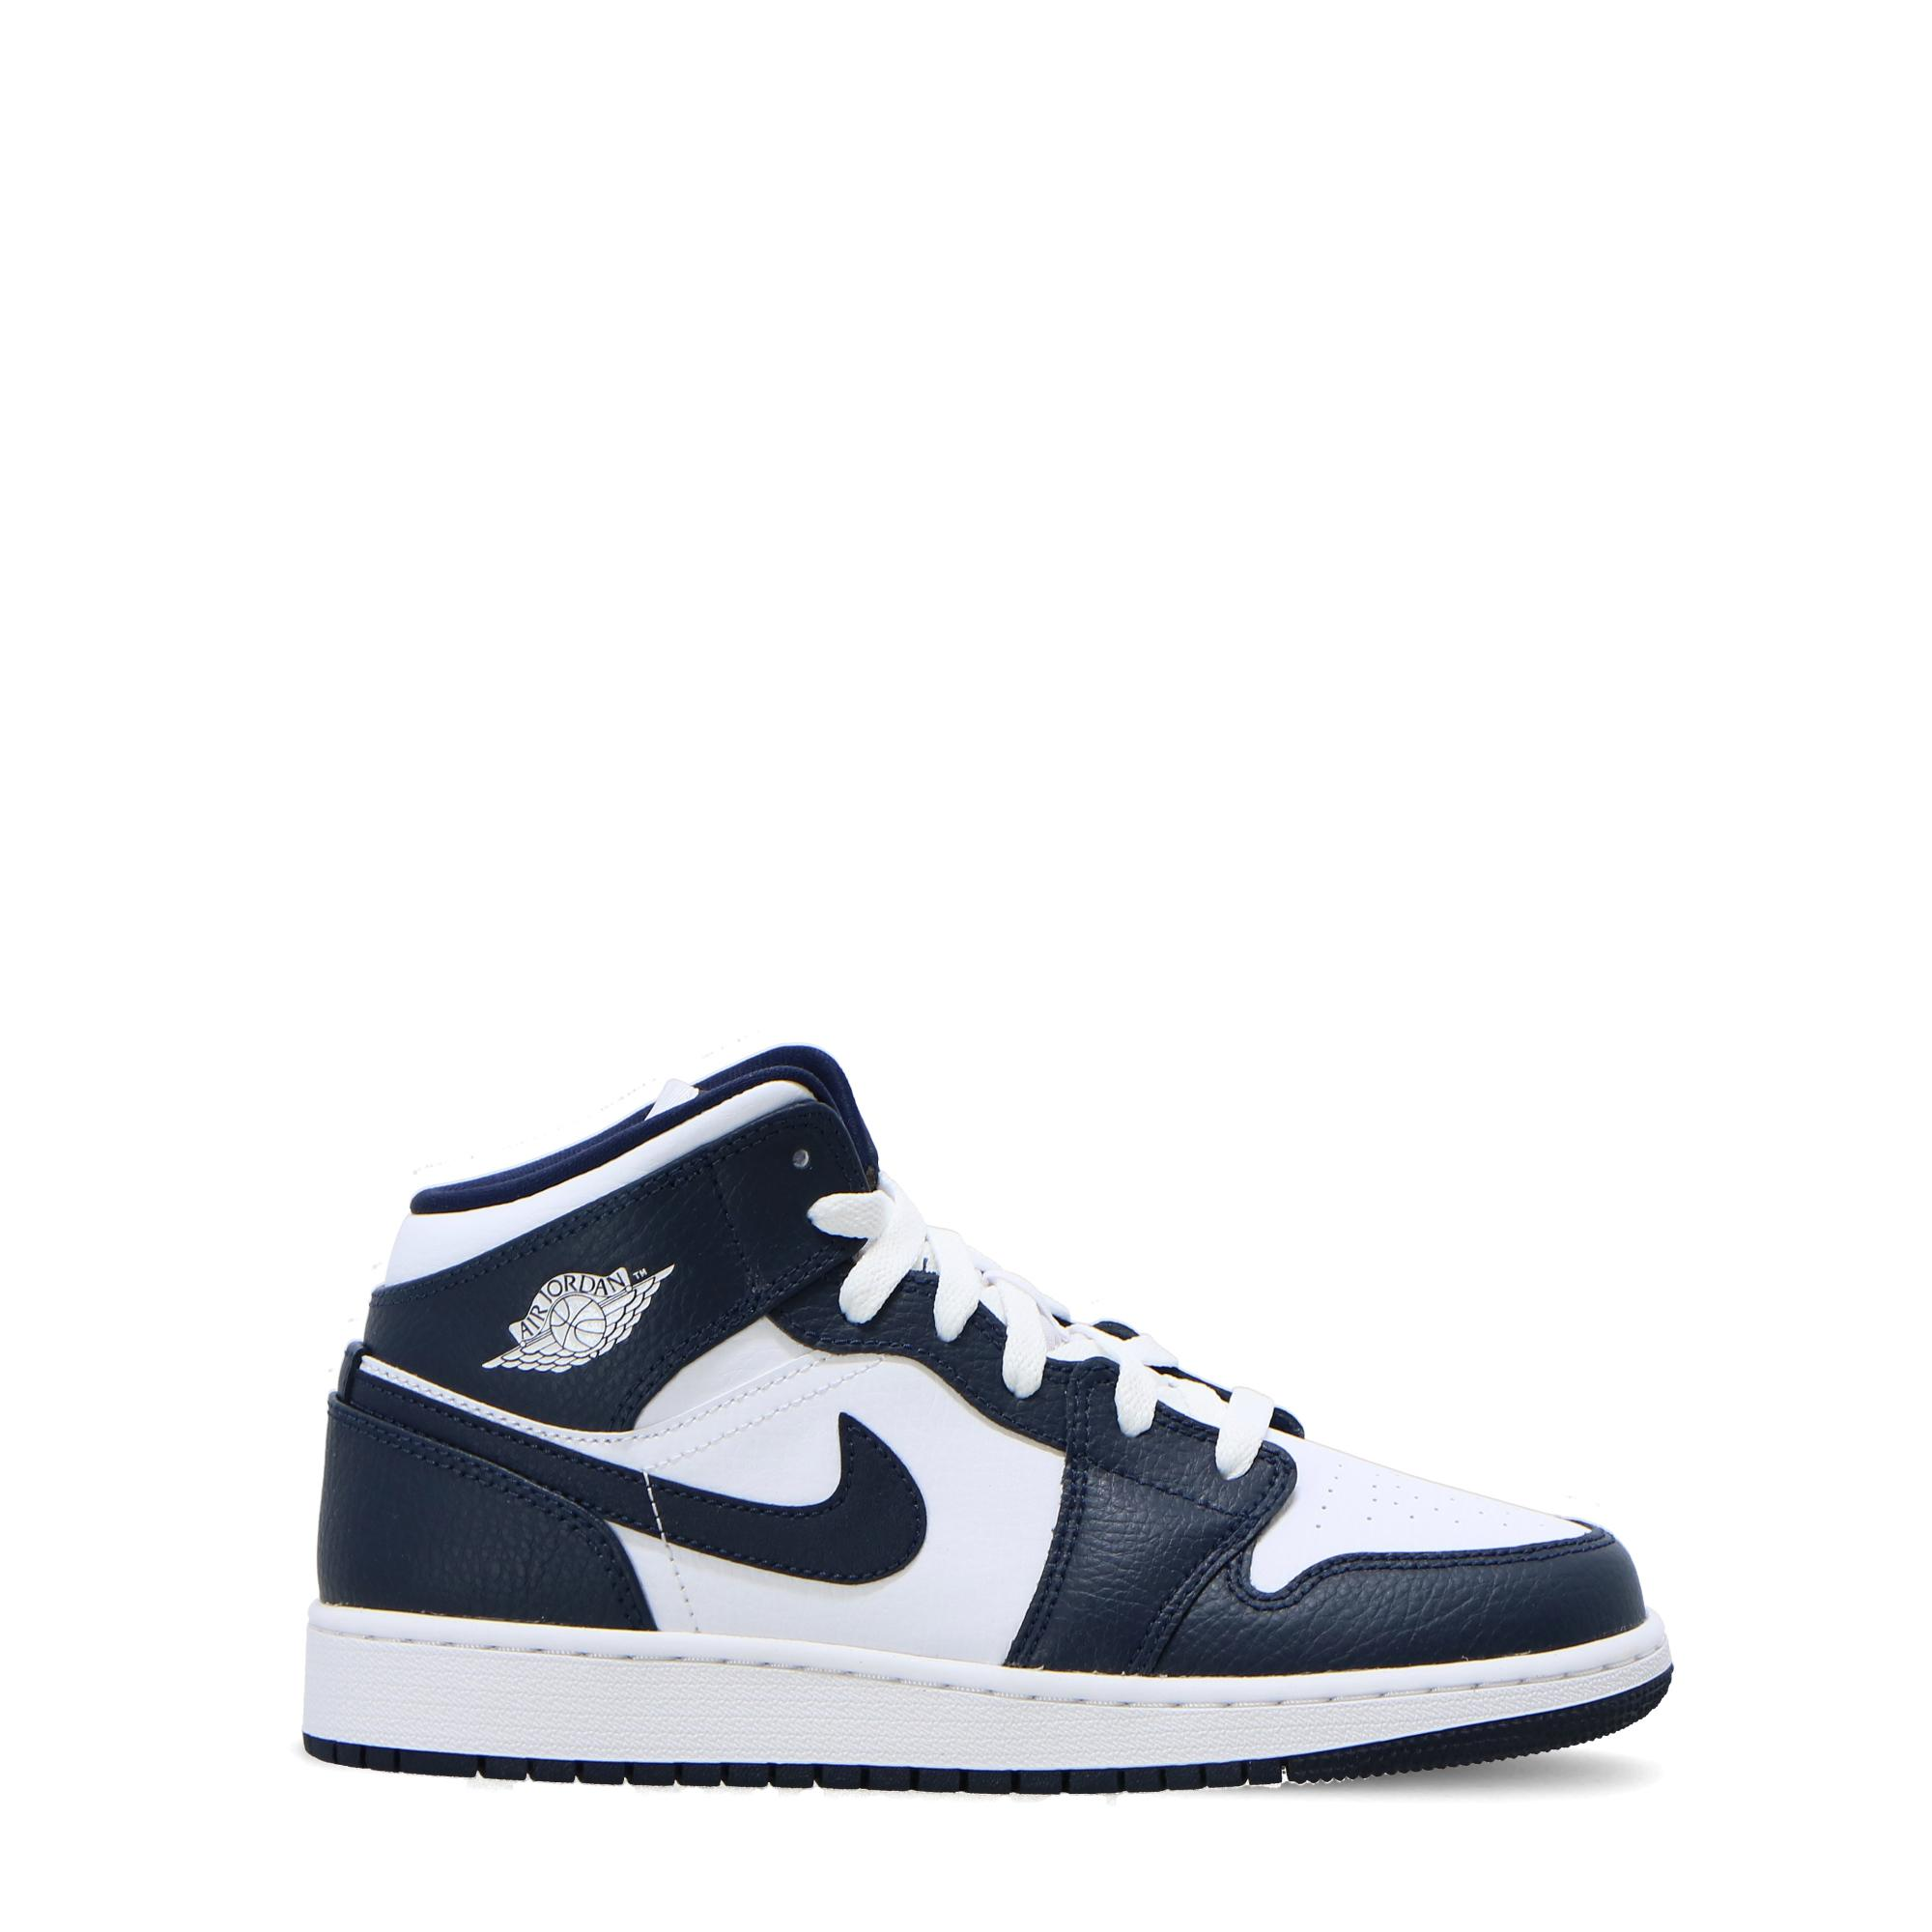 newest 7c95e 662b8 AIR JORDAN 1 MID (GS) - KIDS